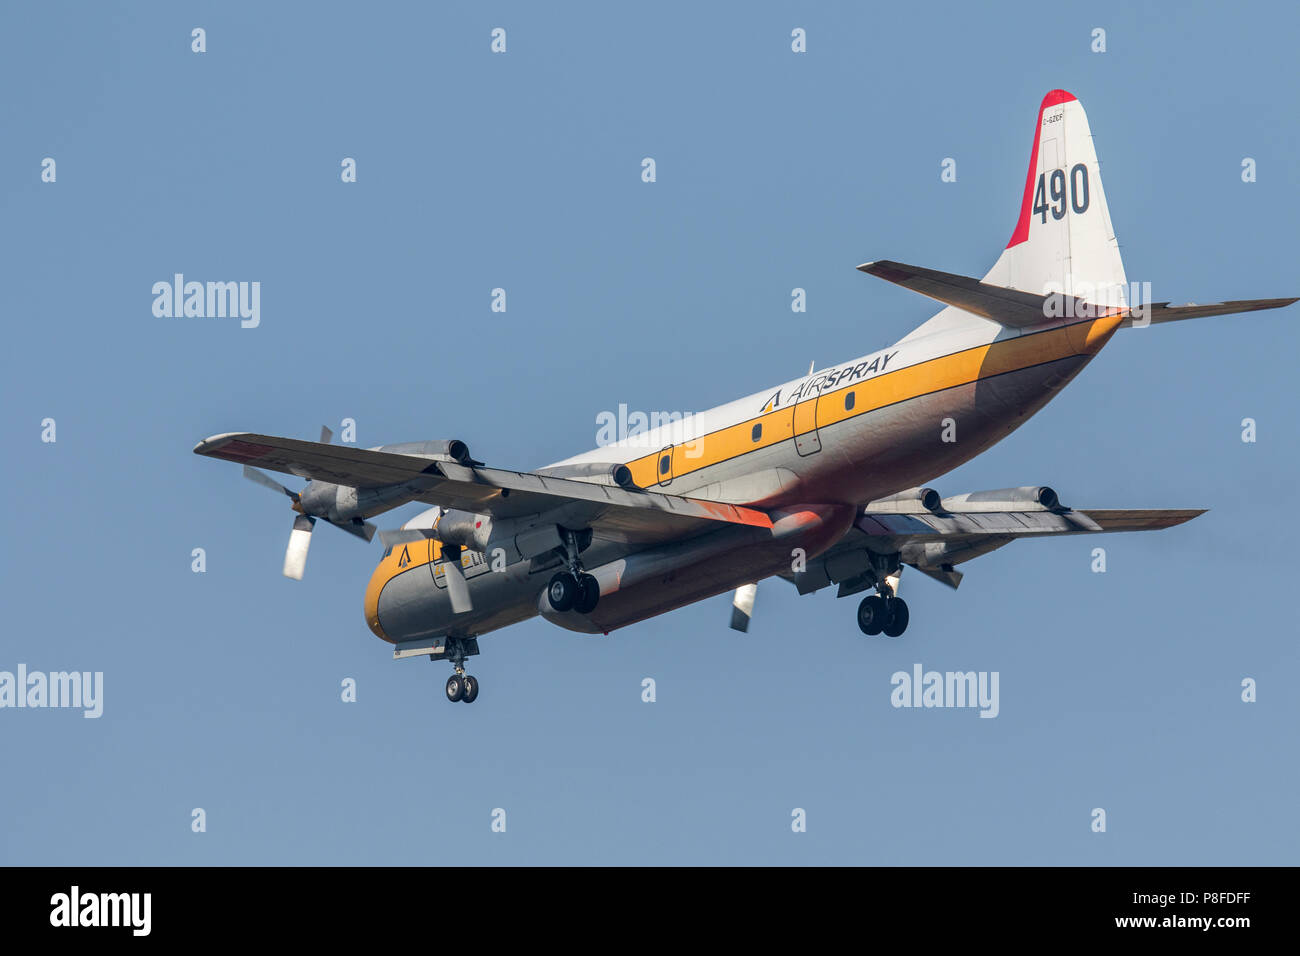 Lockheed L-188 Electra water bomber in flight to drop load